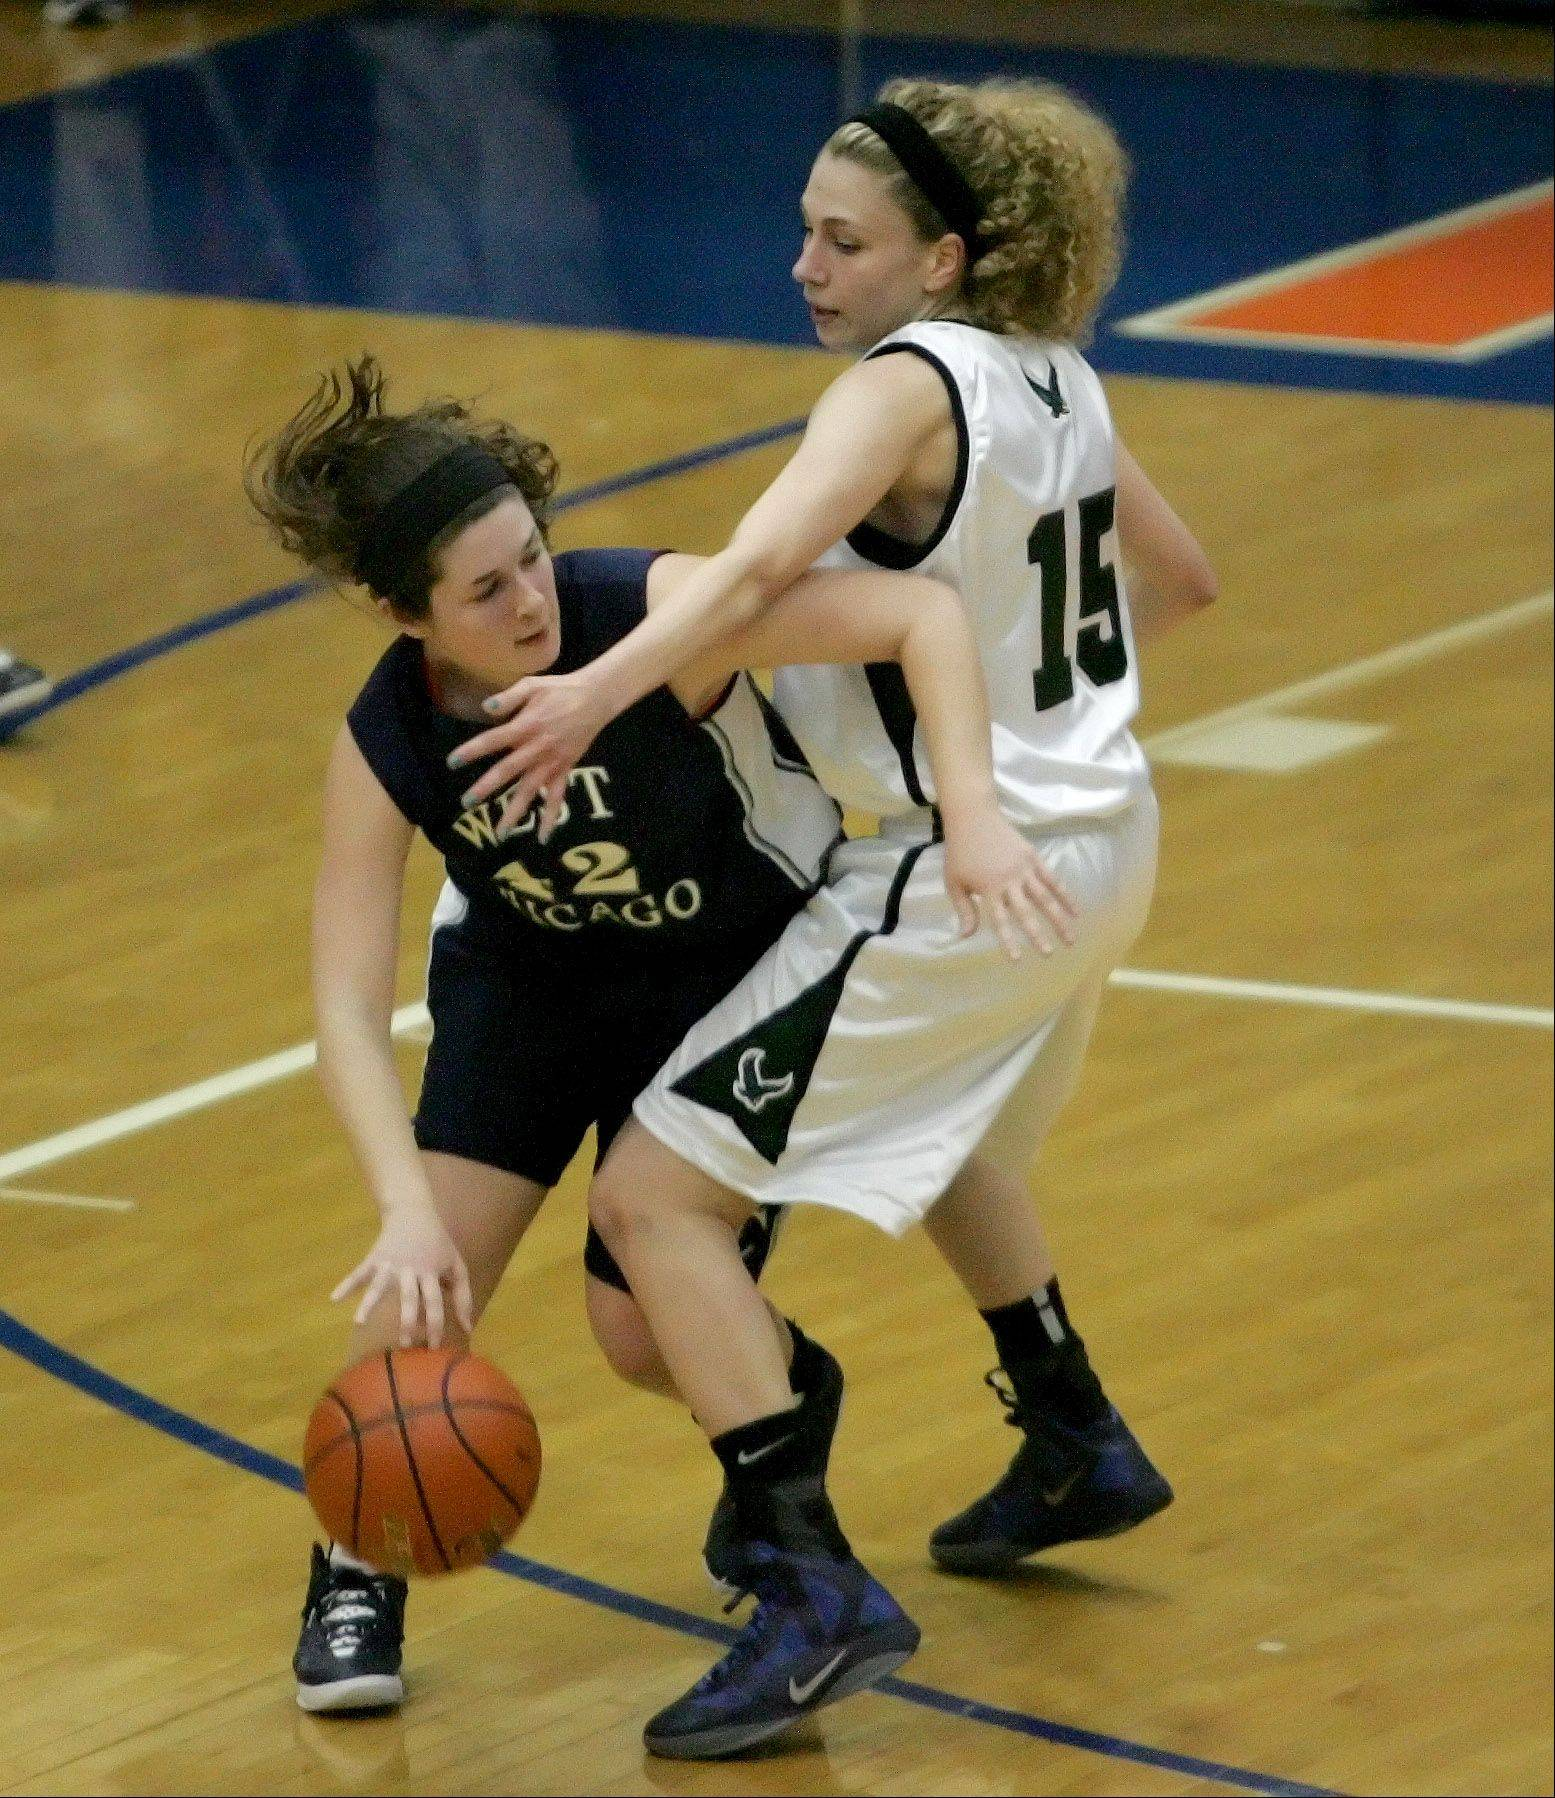 Emily Warkins of West Chicago, left, moves around Katie Gutzwiller of Bartlett in Class 4A sectional semifinal girls basketball action at Hoffman Estates on Monday.